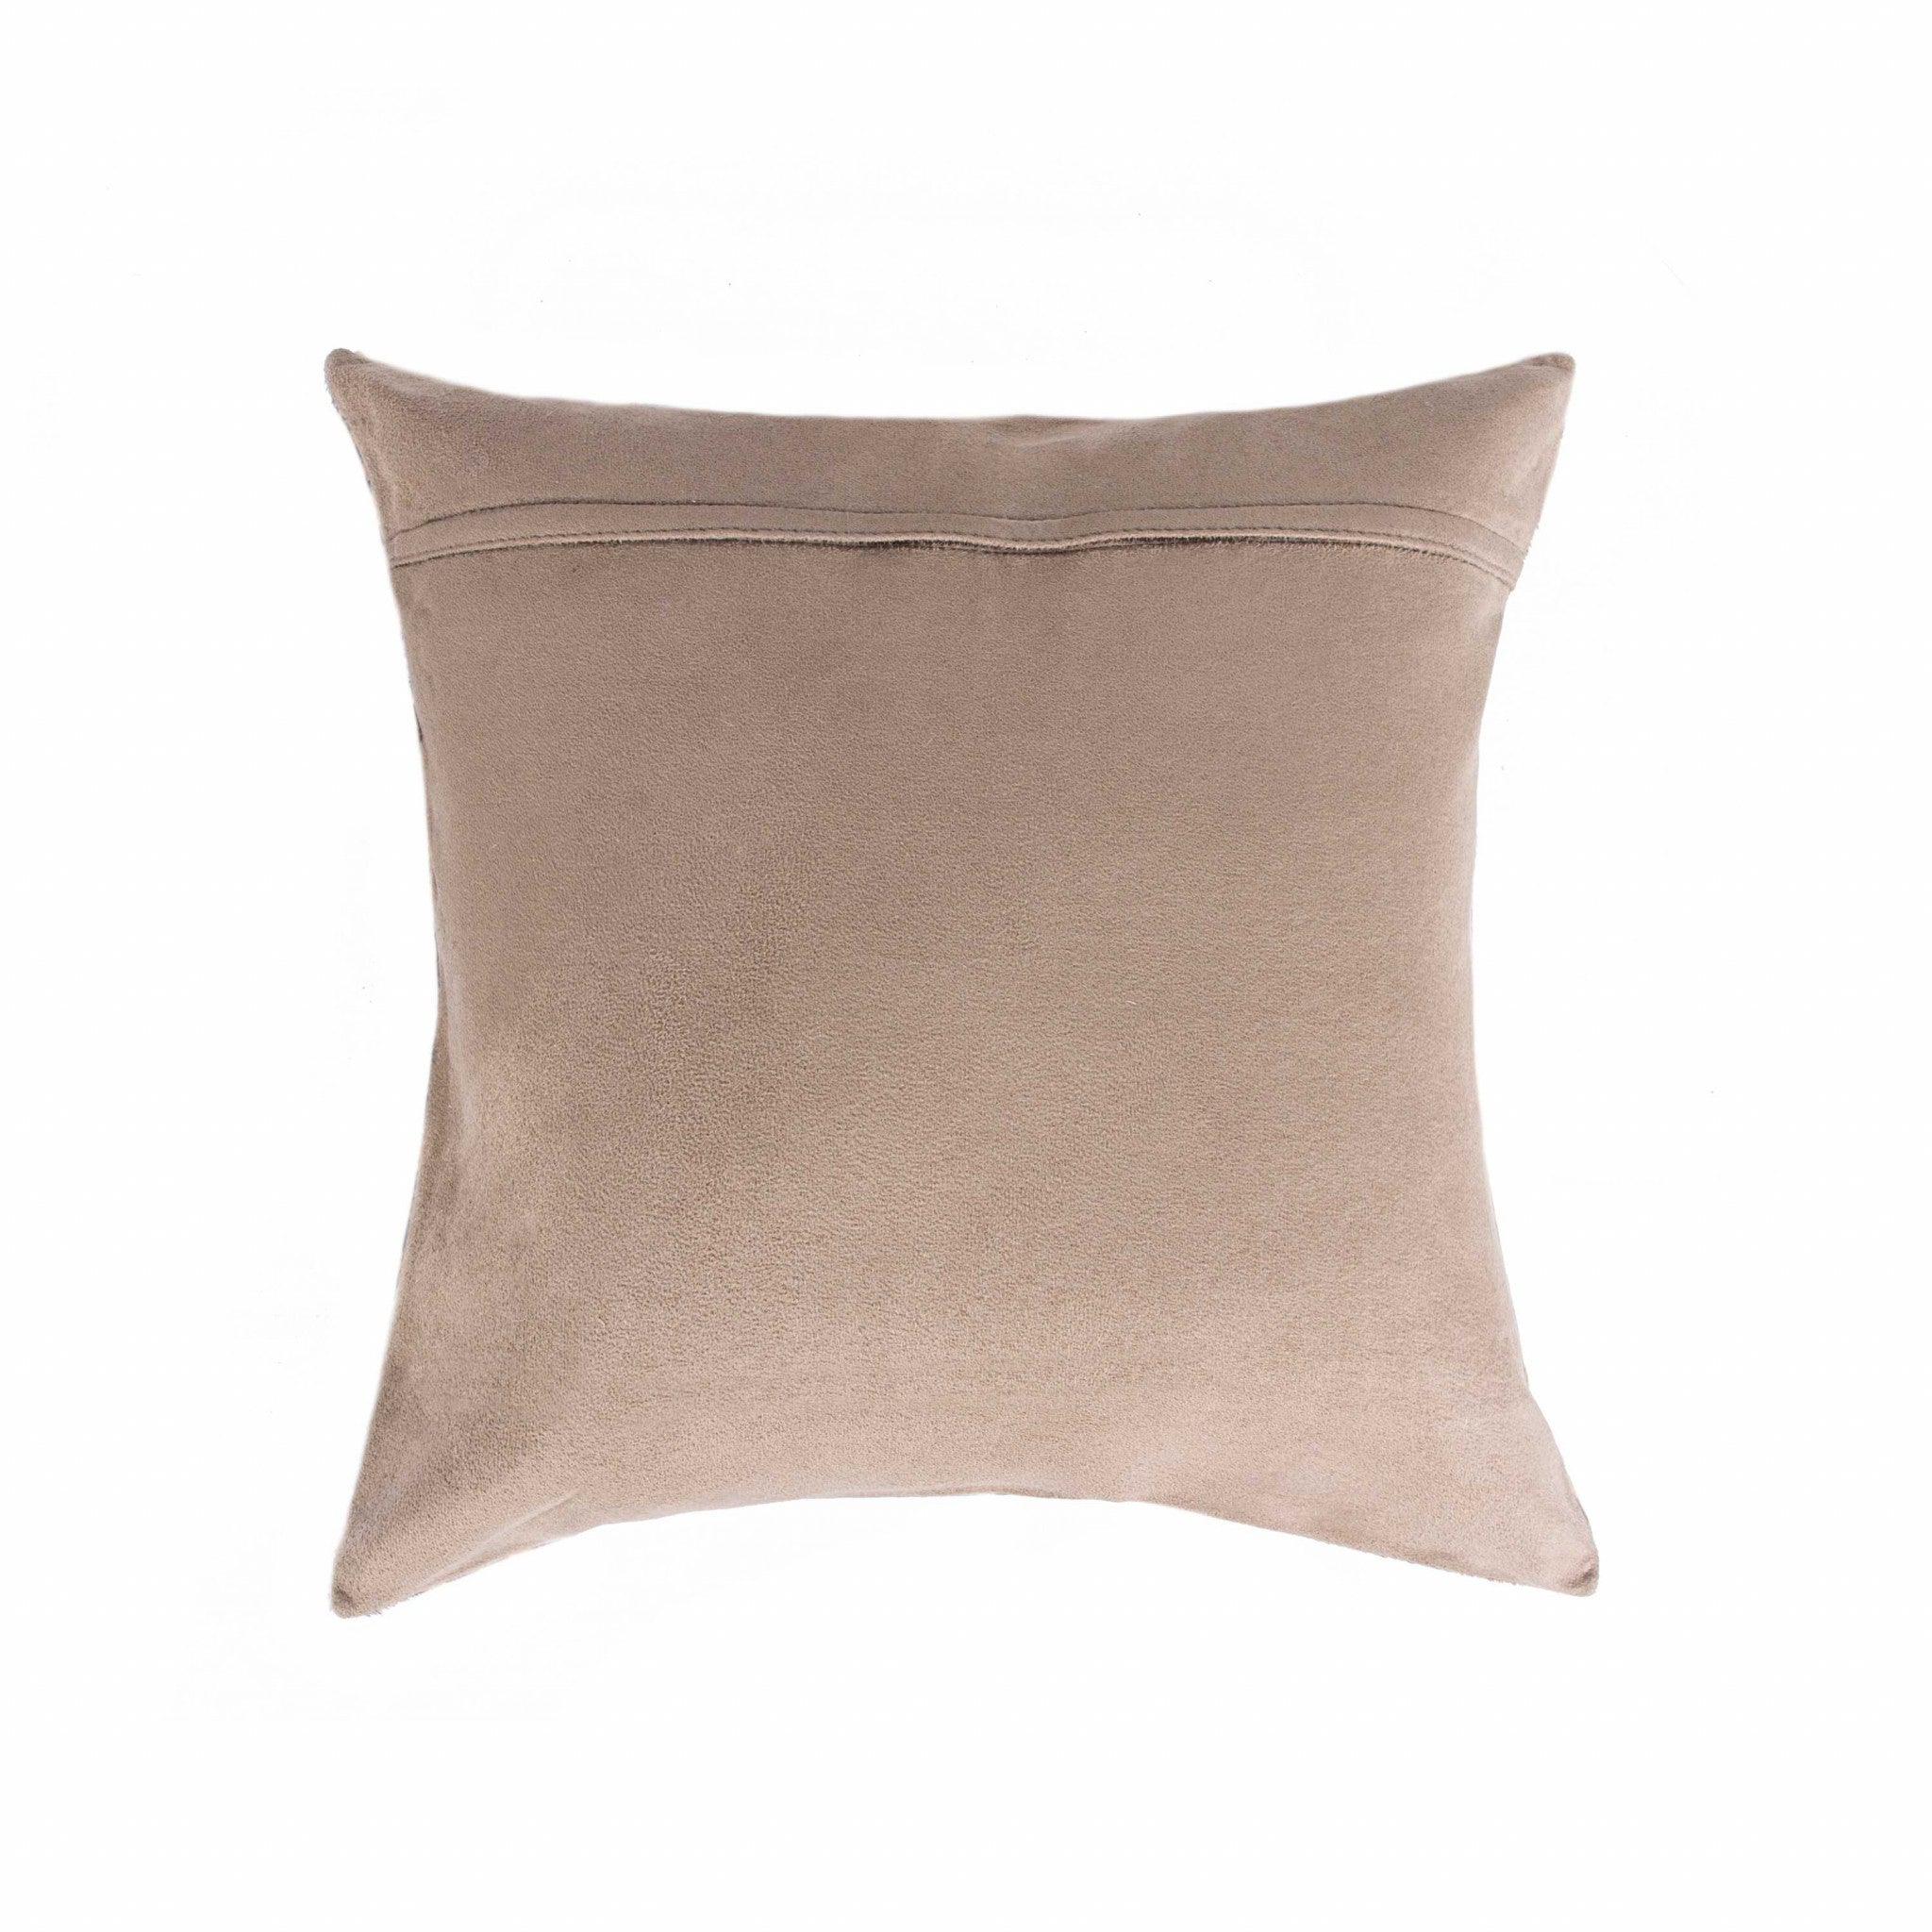 "18"" x 18"" x 5""  Brown And White Cowhide - Pillow"